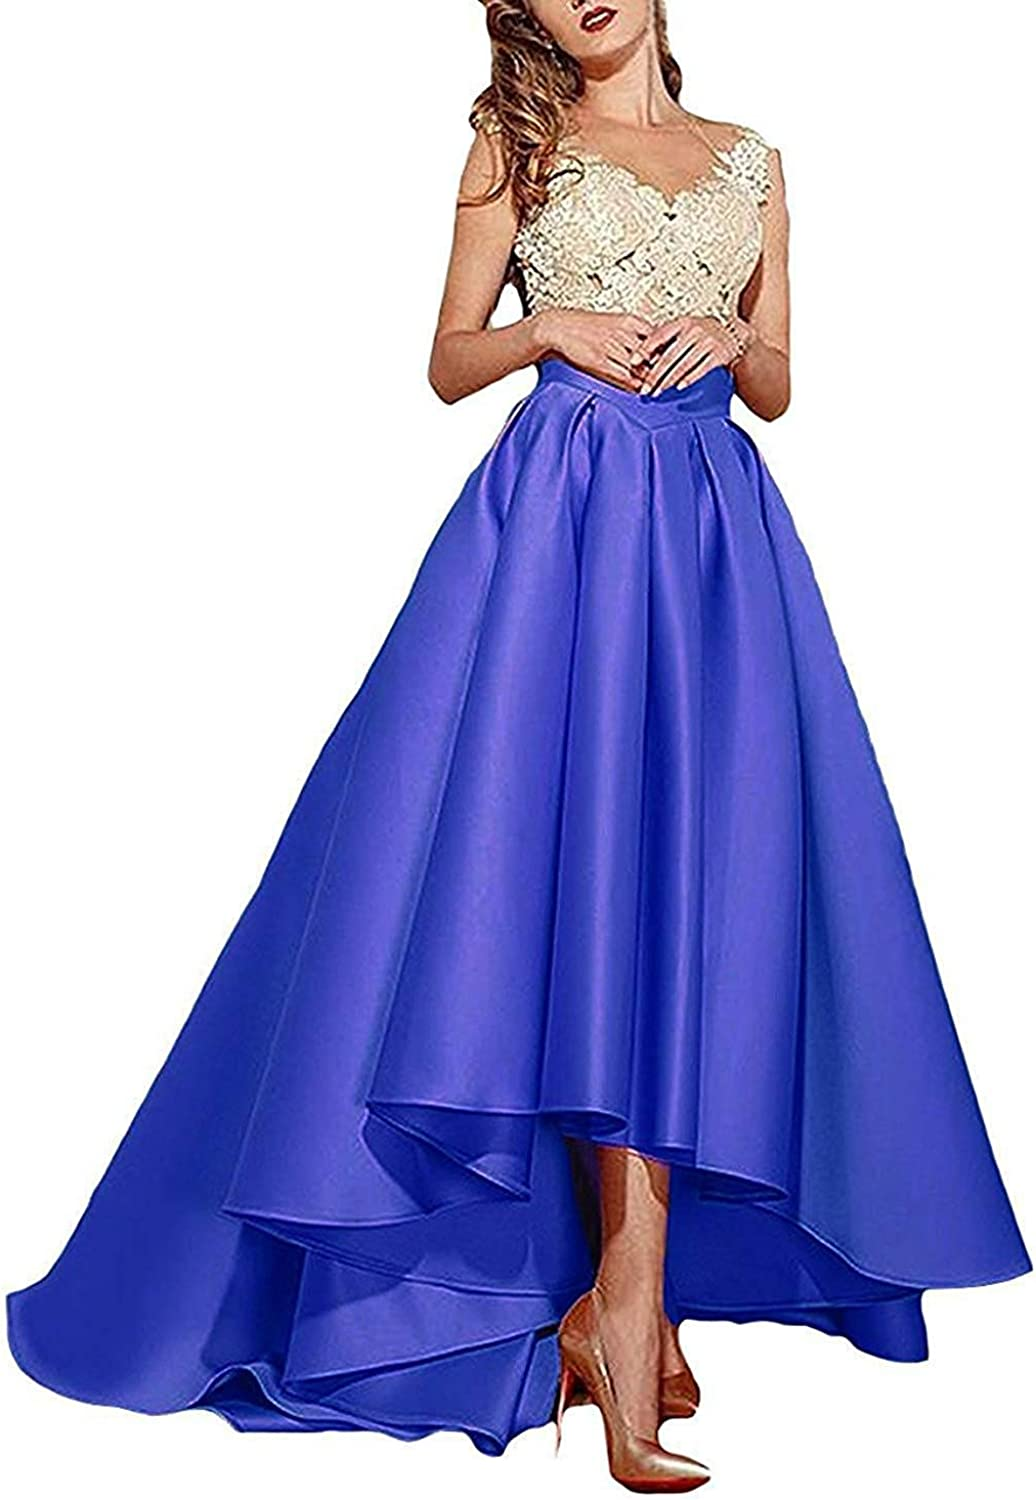 Rieshaneea High Low Prom Dresses Lace Evening Party Gowns